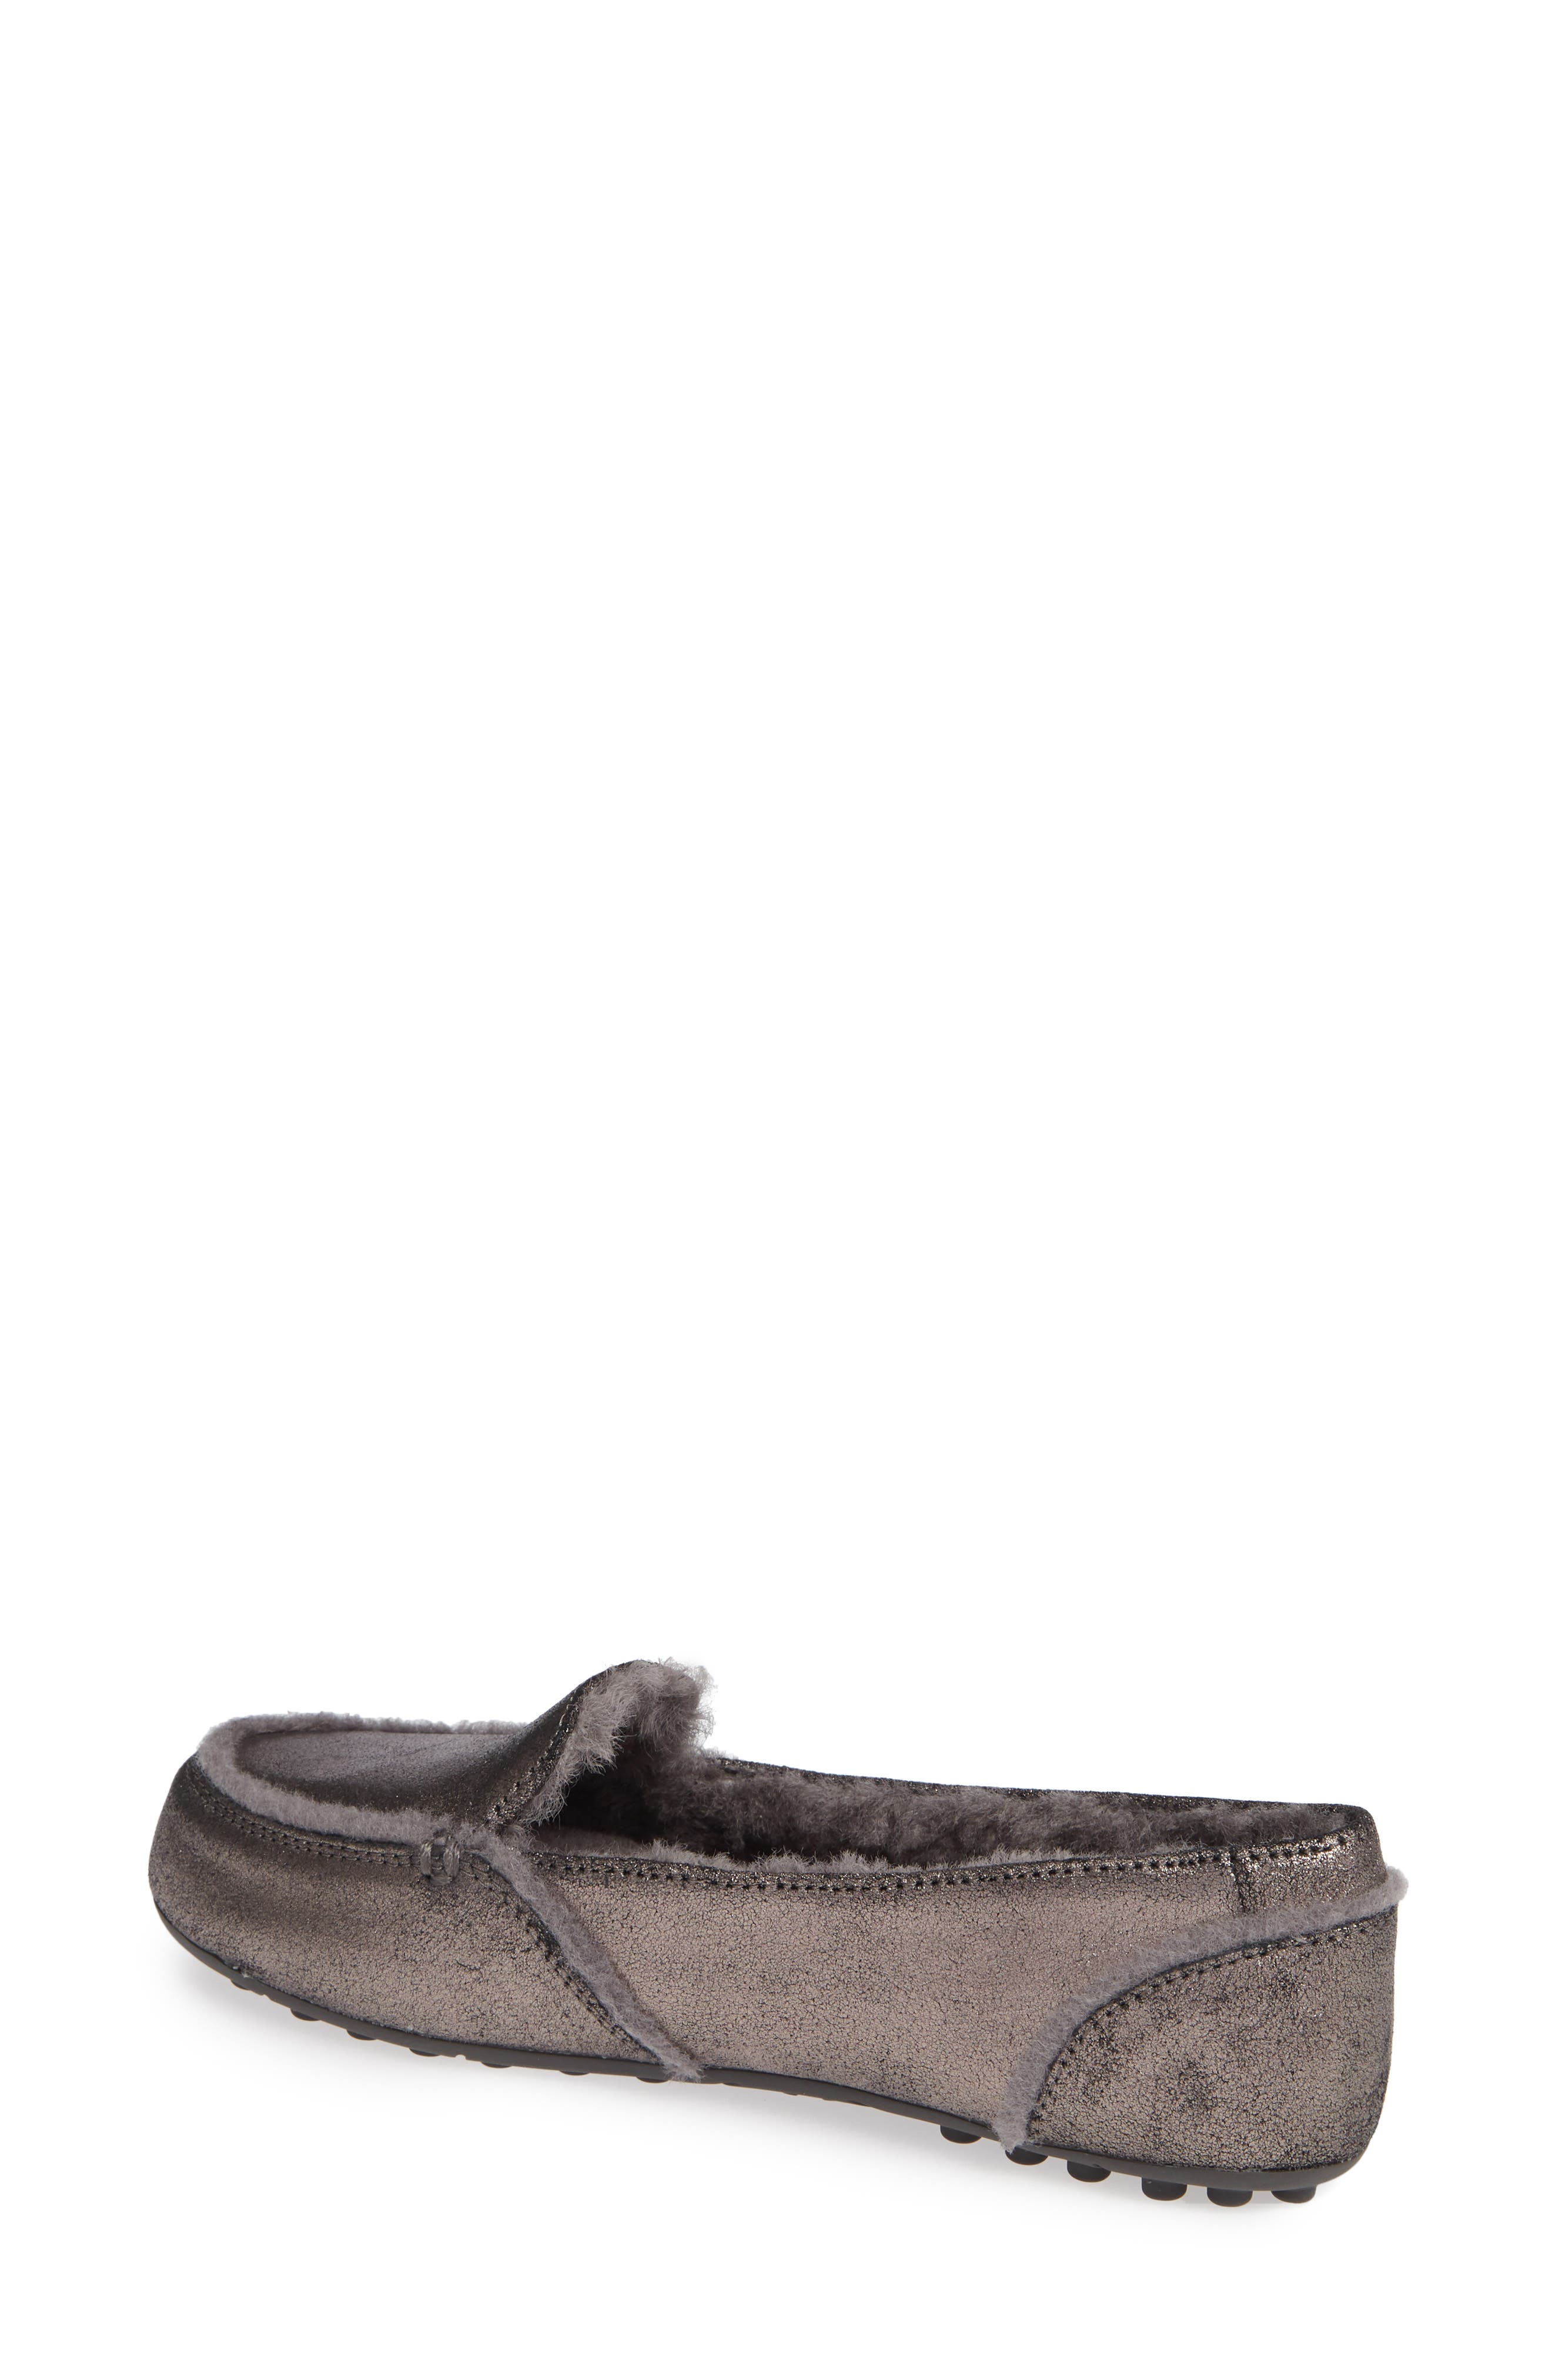 Hailey Metallic Slipper,                             Alternate thumbnail 2, color,                             GUNMETAL